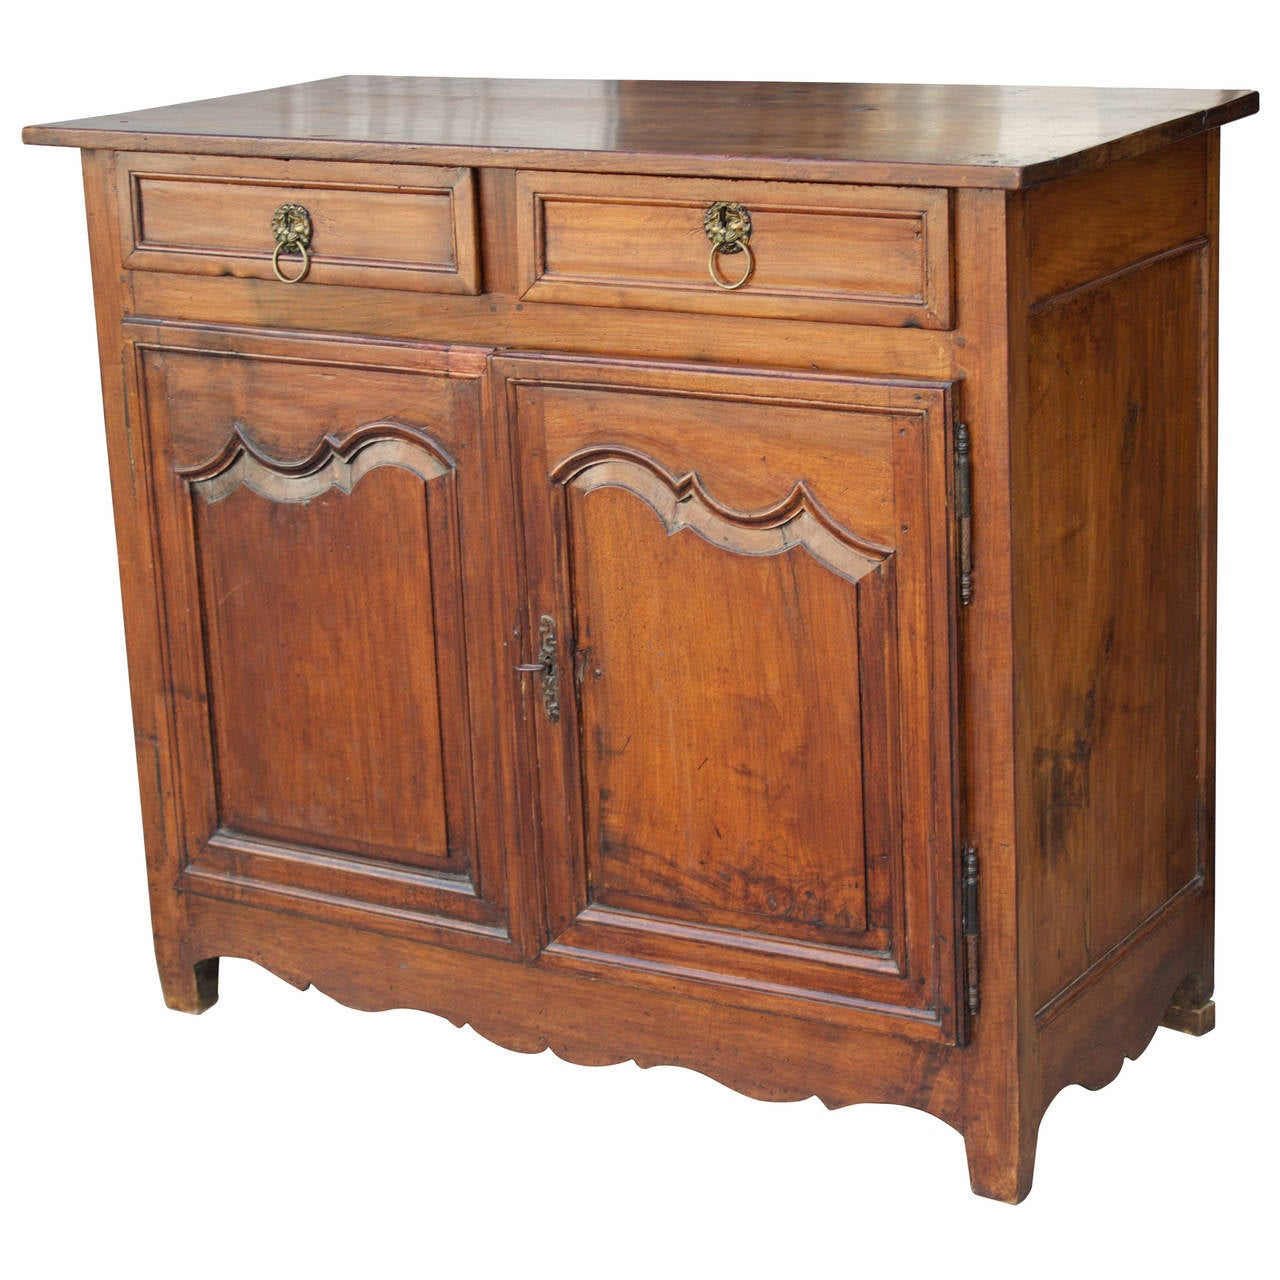 18th century french country louis xiv walnut buffet or for French country furniture